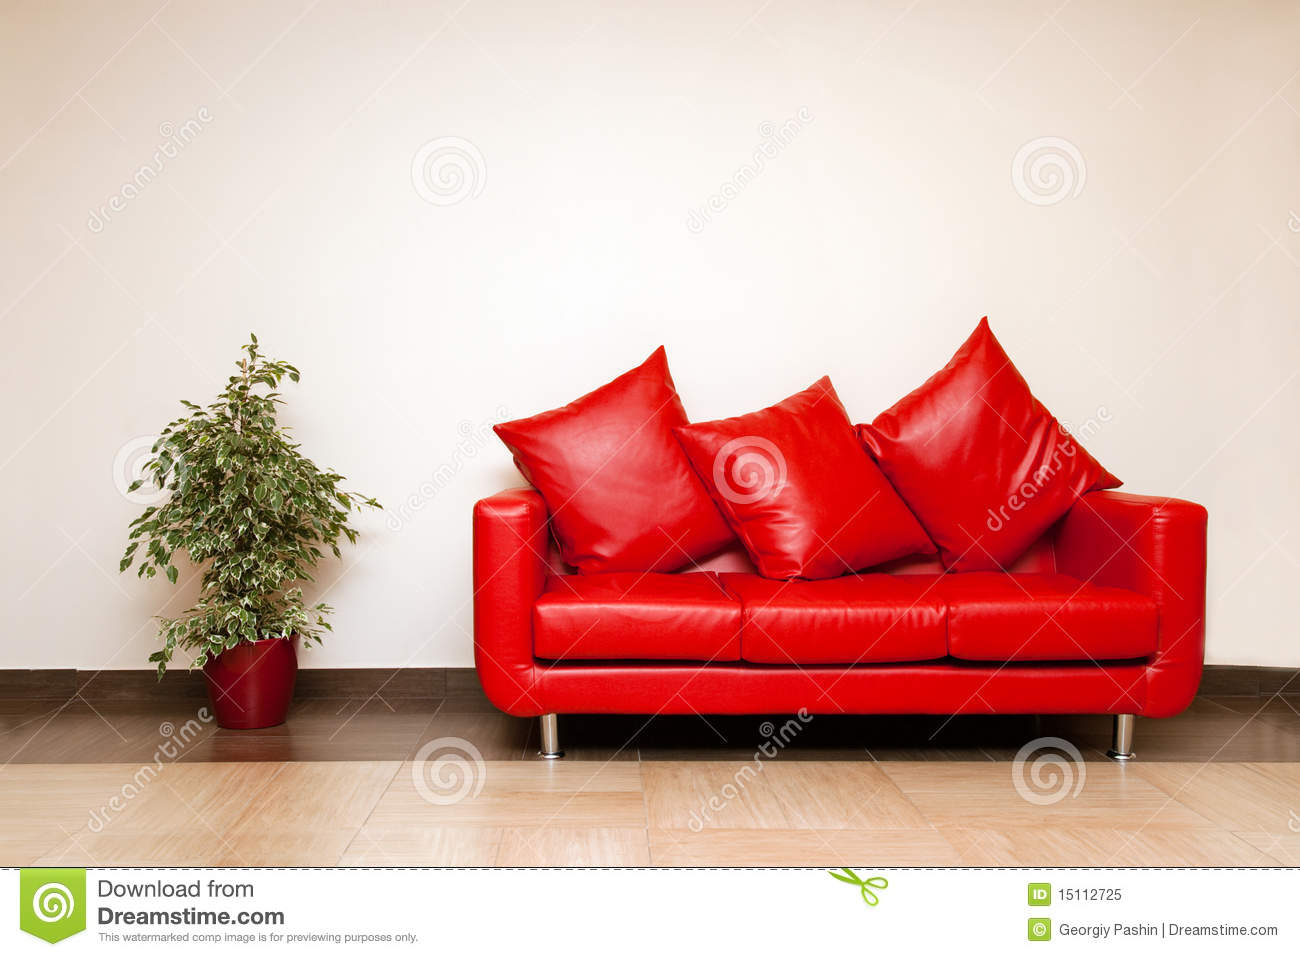 Red leather sofa with pillow with plant near